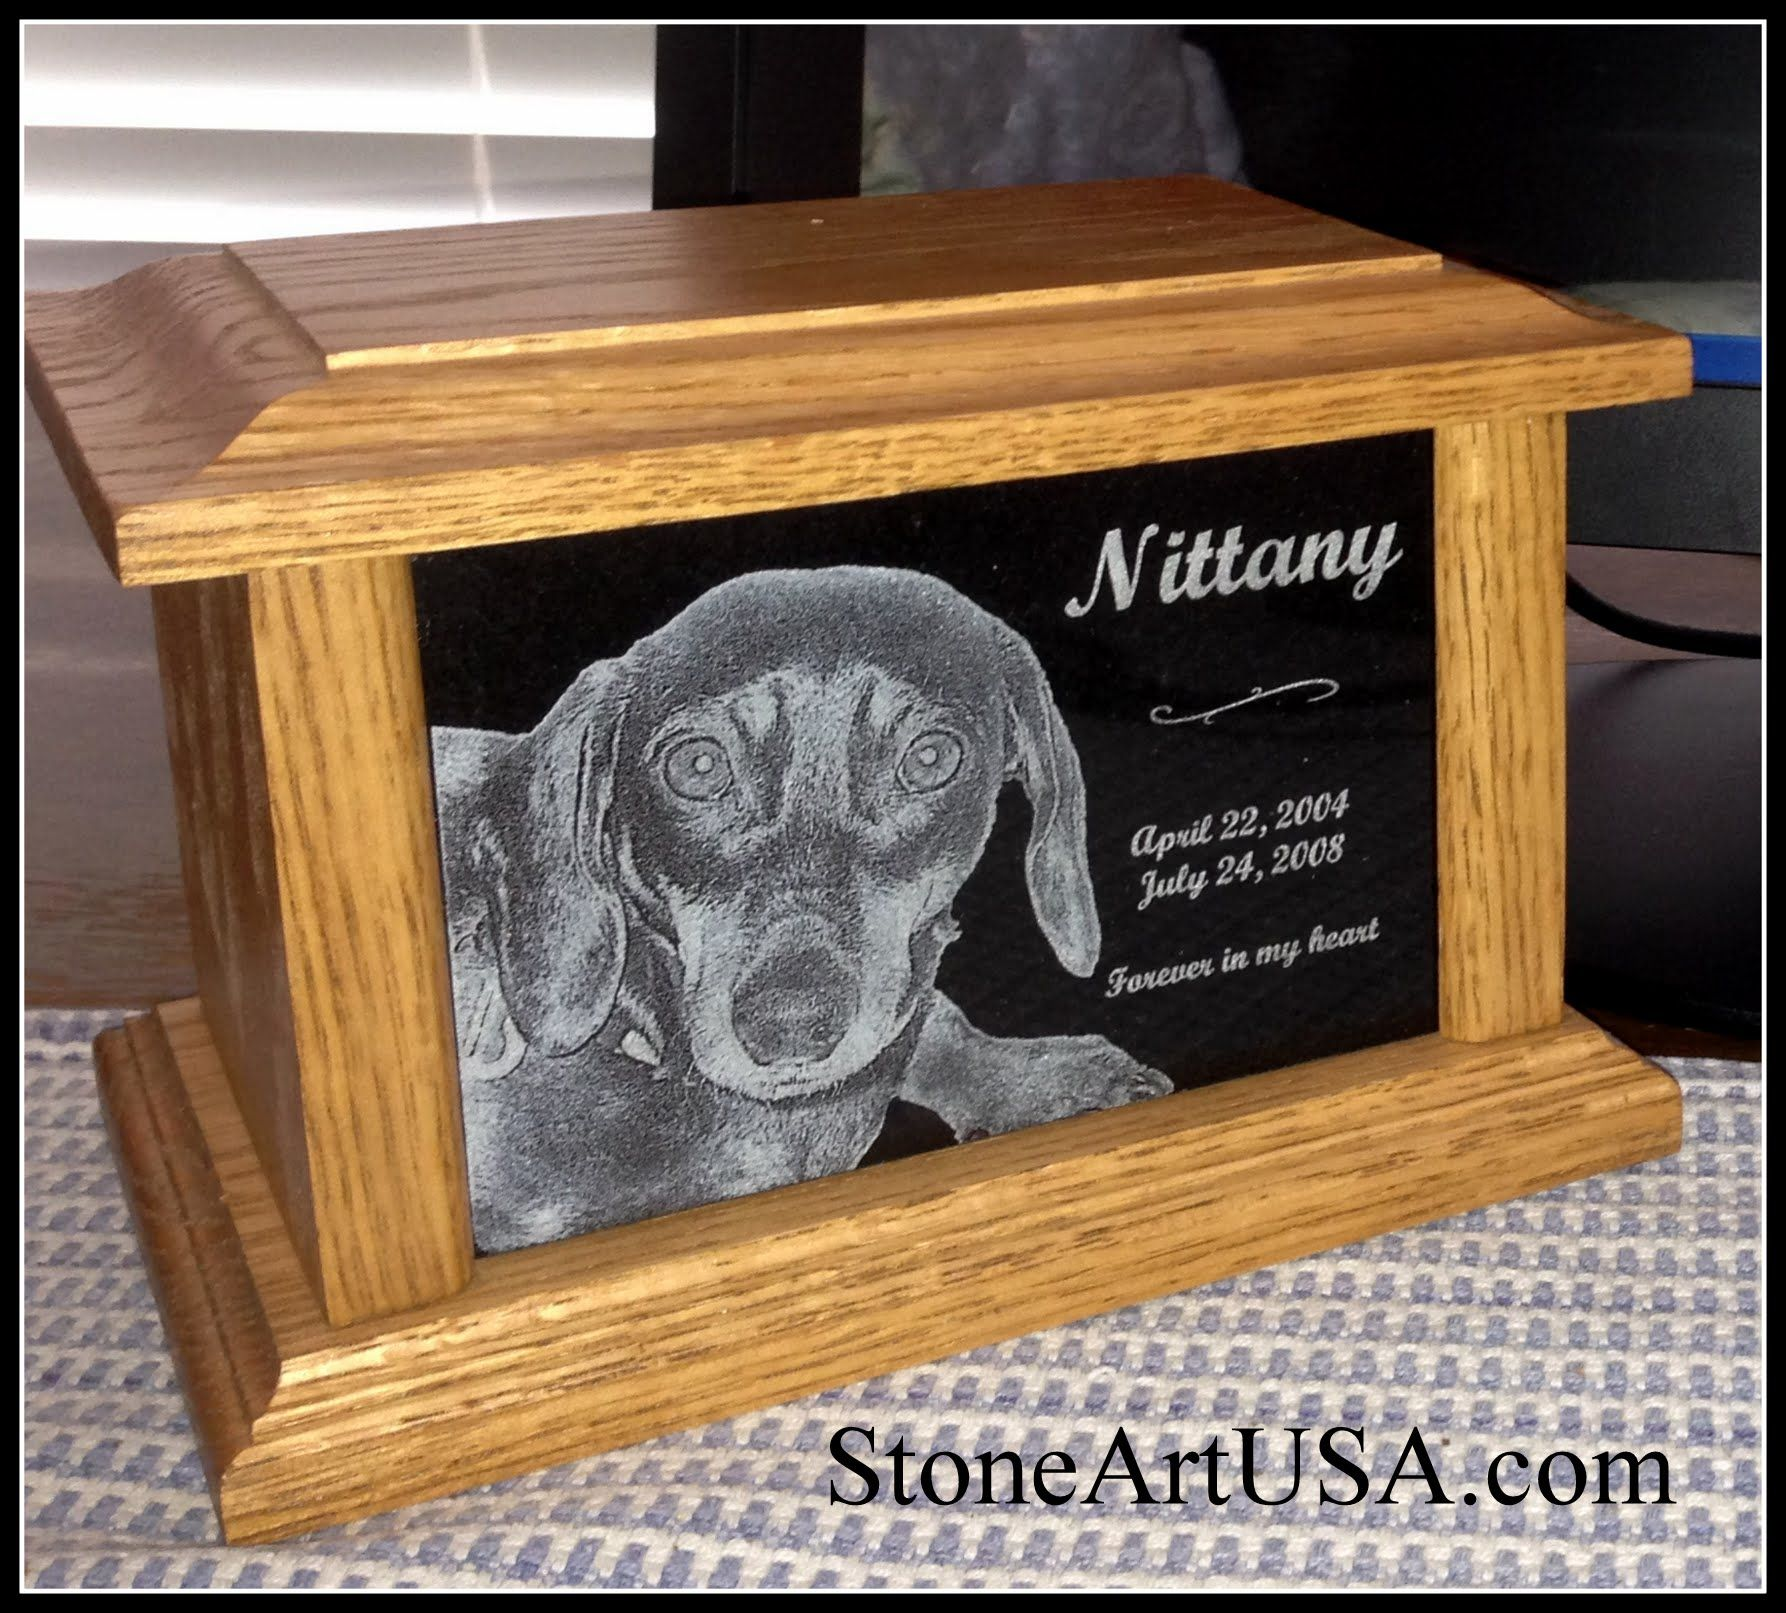 By StoneArtUSA.com Laser Etched Granite